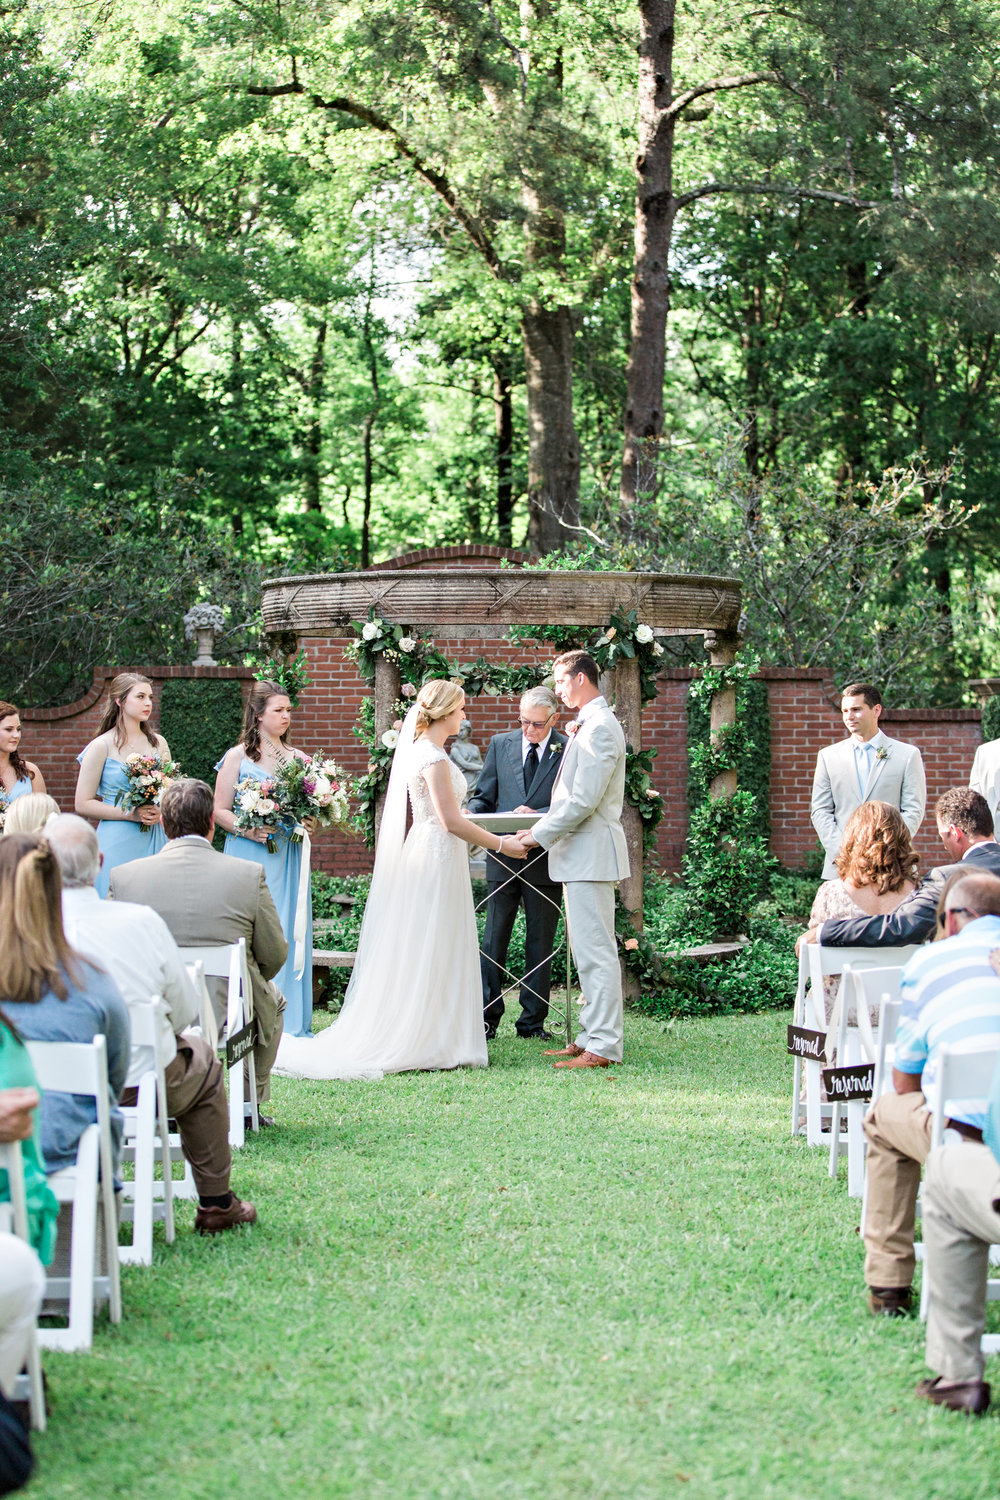 Matty-Drollette-Photography-Alabama-Weddings-Sara and Logan-136.jpg